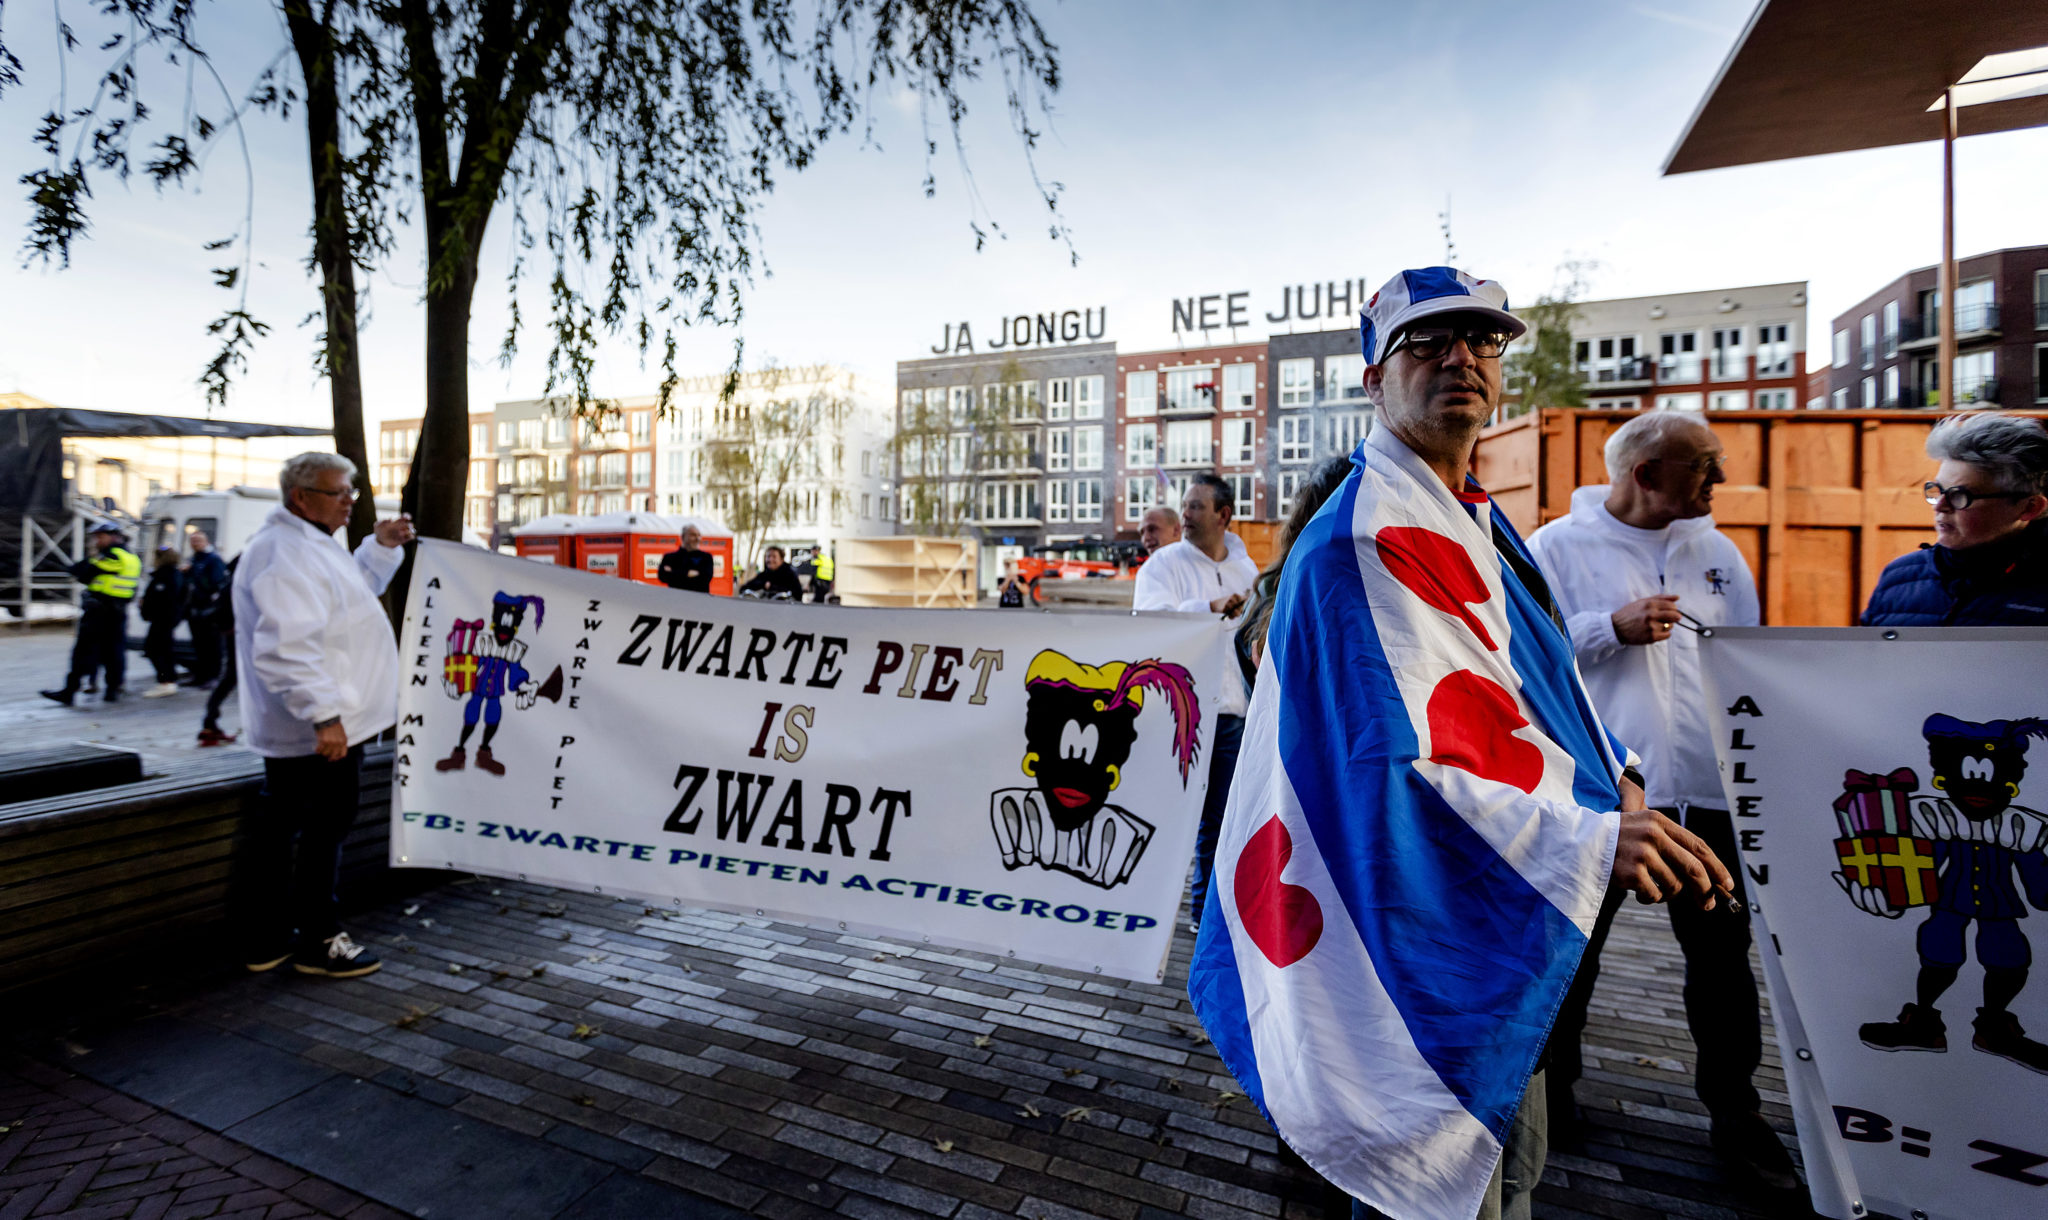 The Block Frisians, ba-anti-piet activists le papali ea lipolotiki